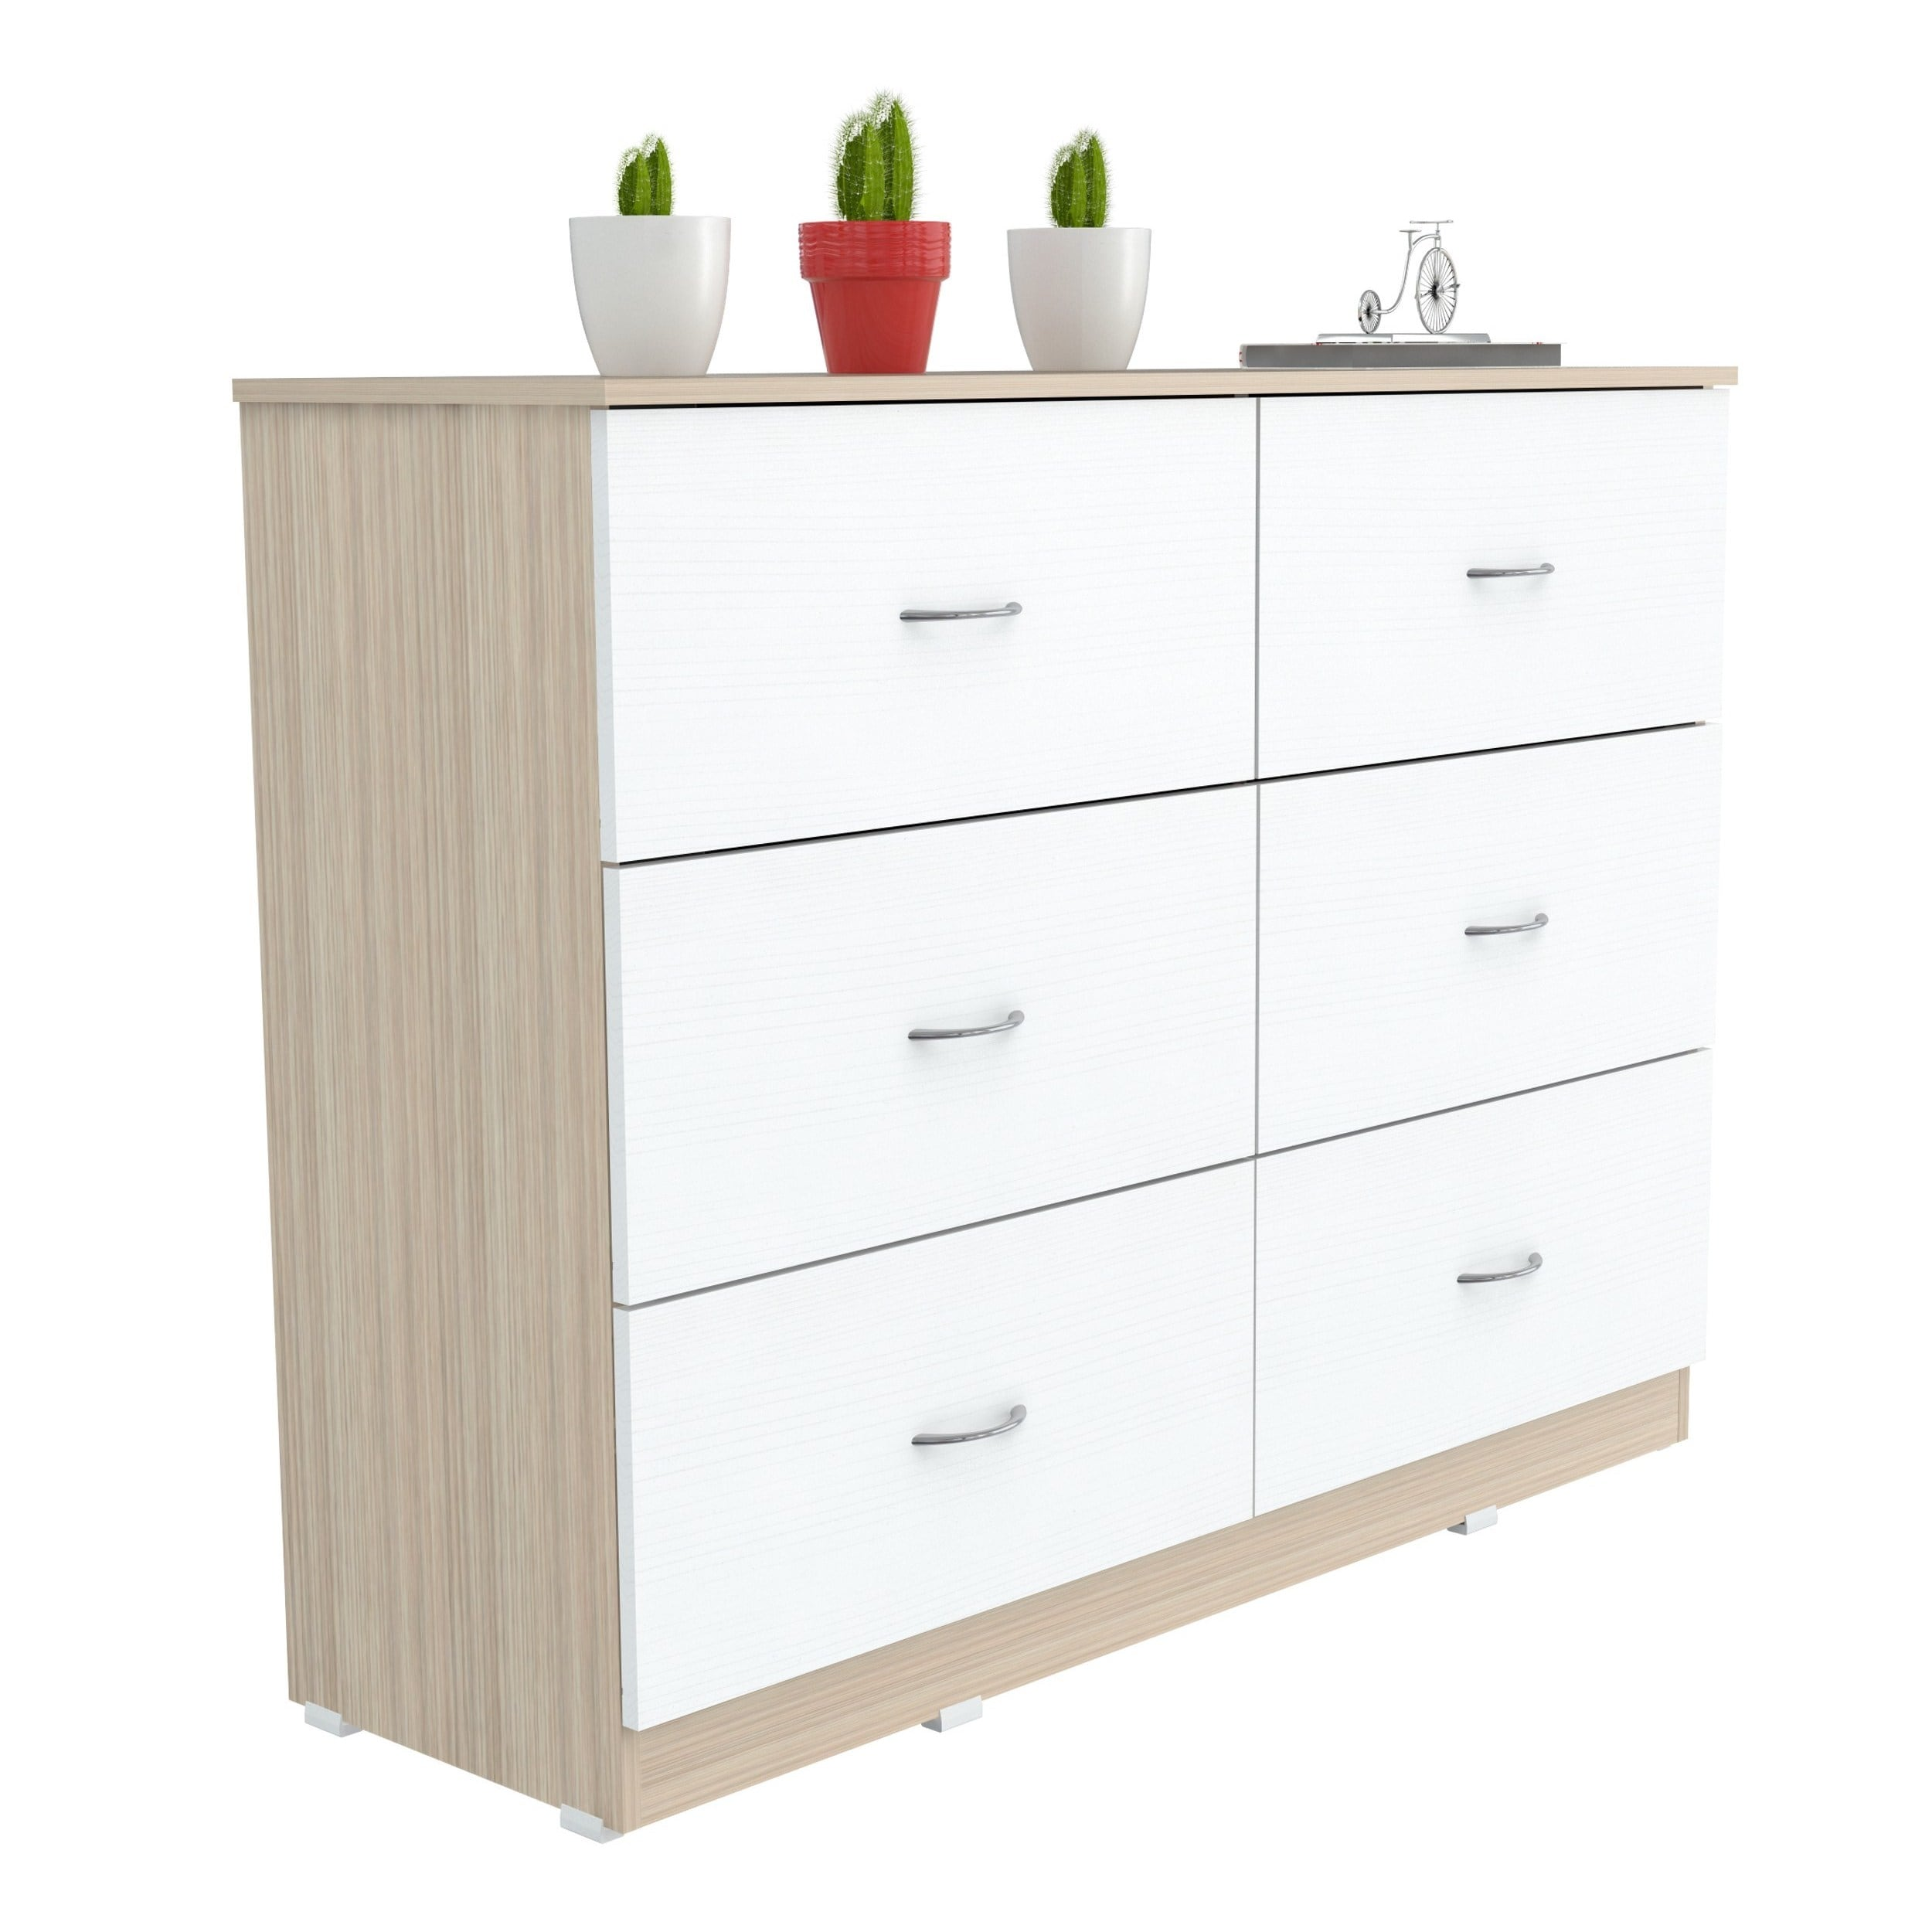 Inval Laura Laricina White Beech Six Drawer Dresser Free Shipping Today 18588890